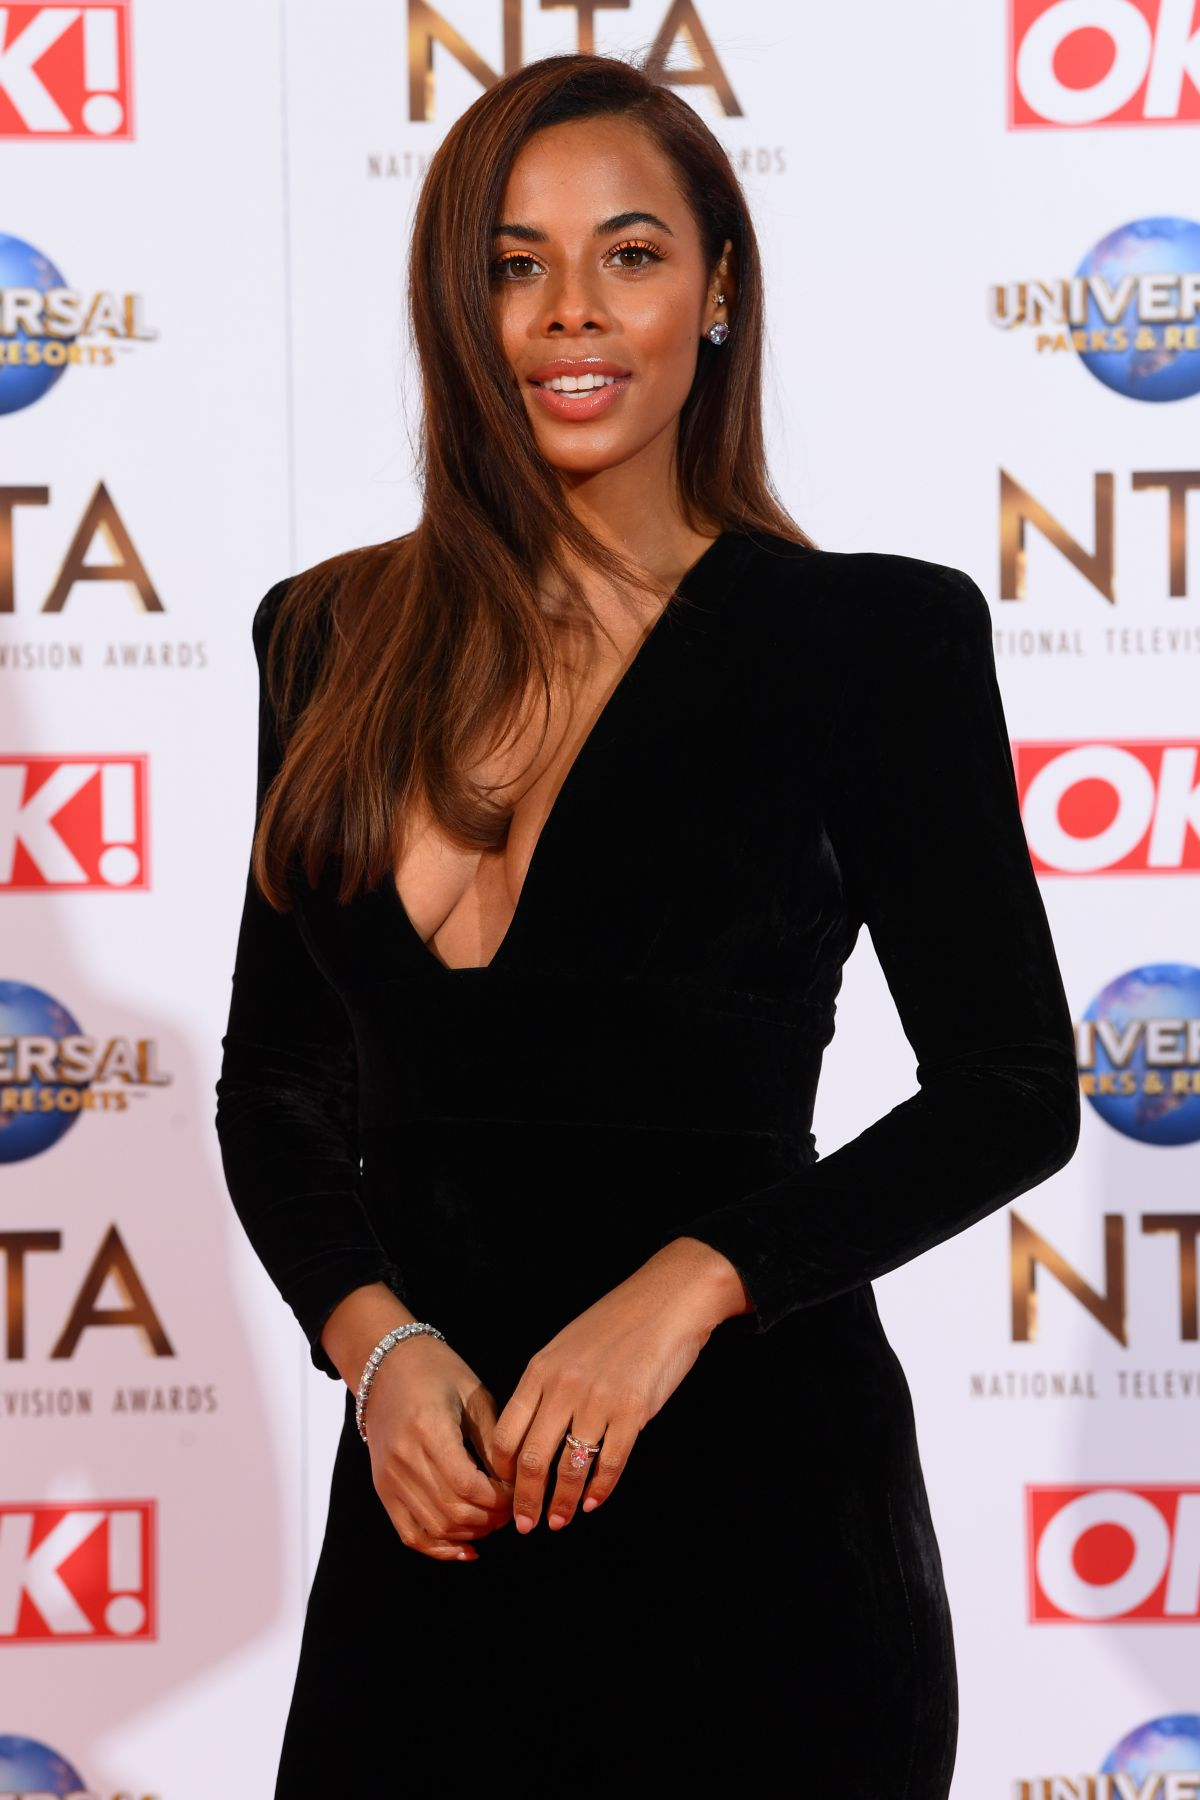 ROCHELLE HUMES at National Television Awards 2020 in ...